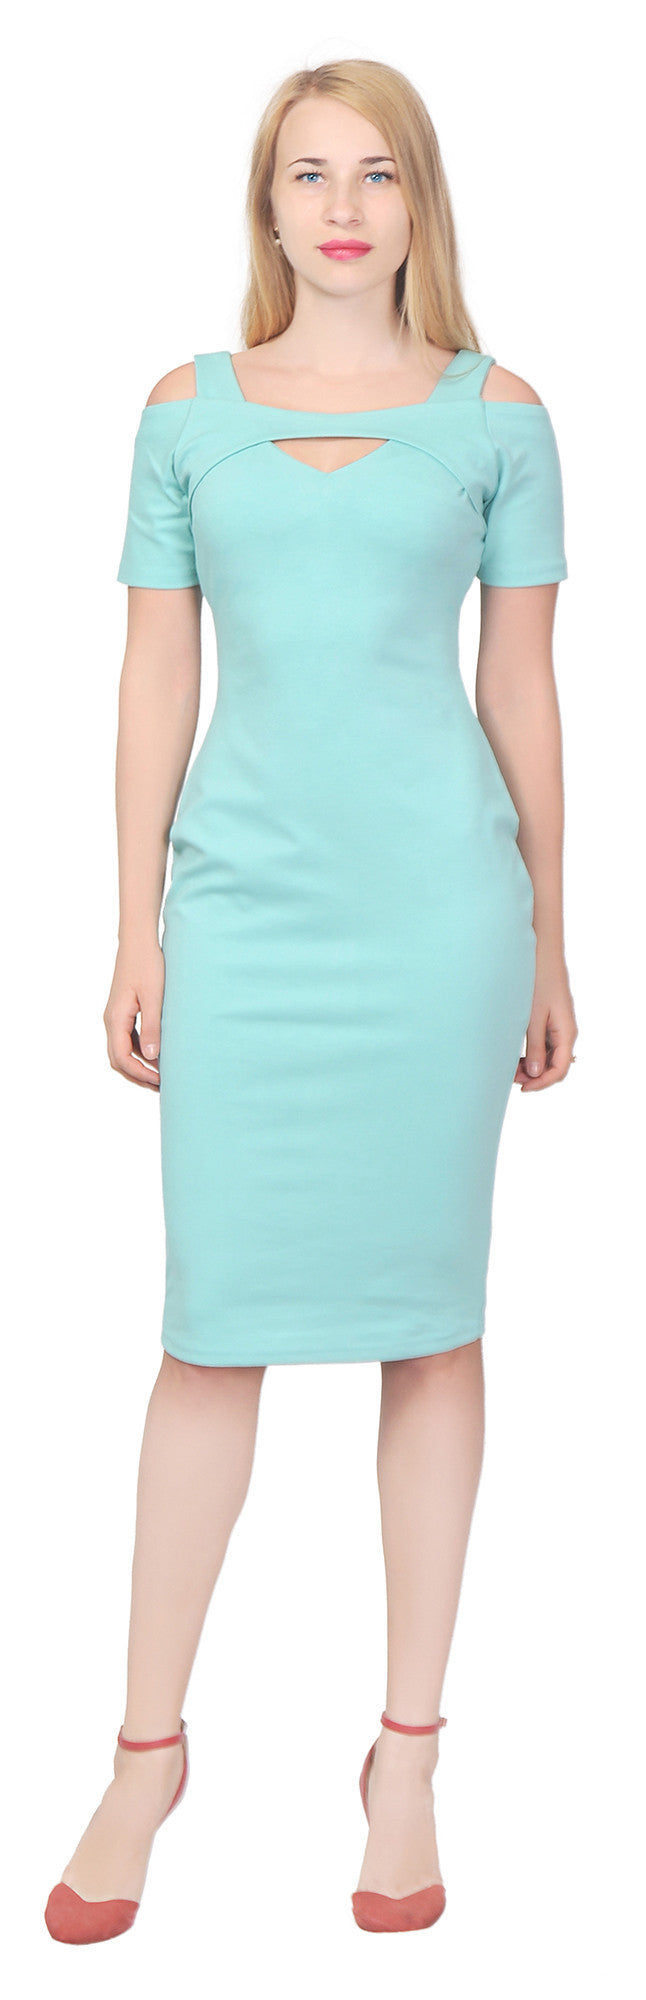 Women's Elegant Cold Shoulder cutout Sheath Midi Dress for Cocktail Evening Party